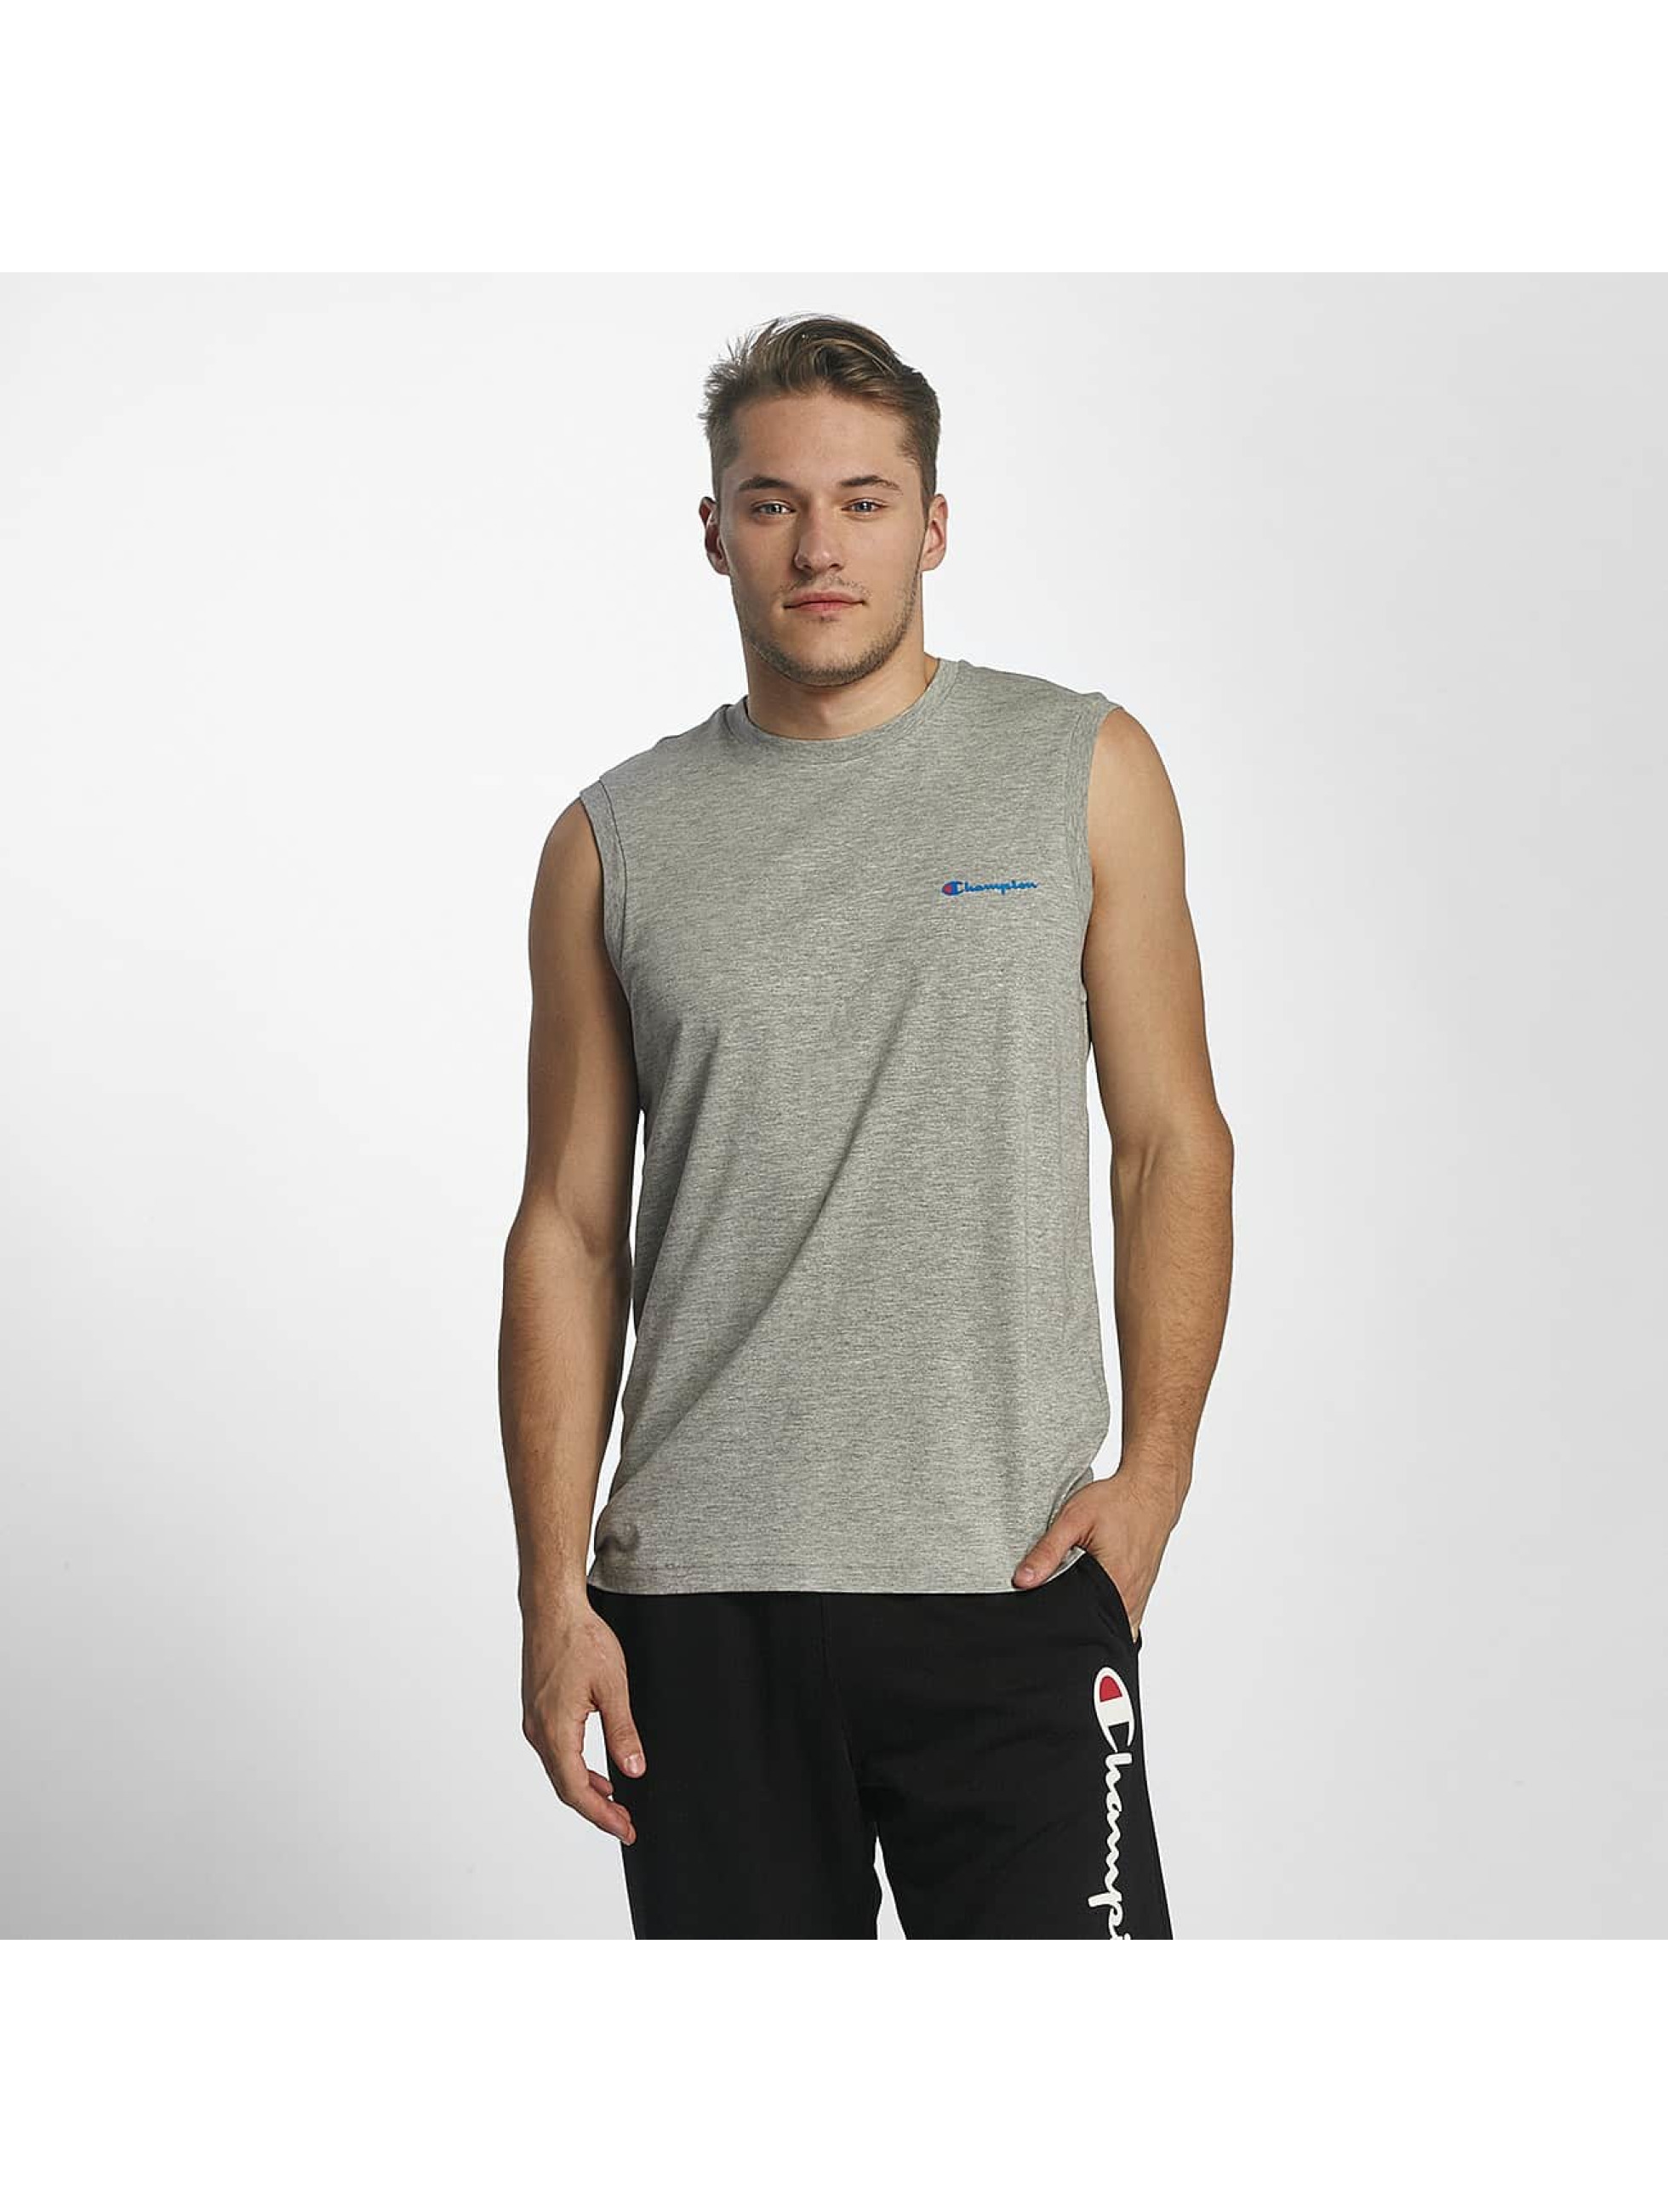 Champion Athletics Männer T-Shirt Sleeveless in grau